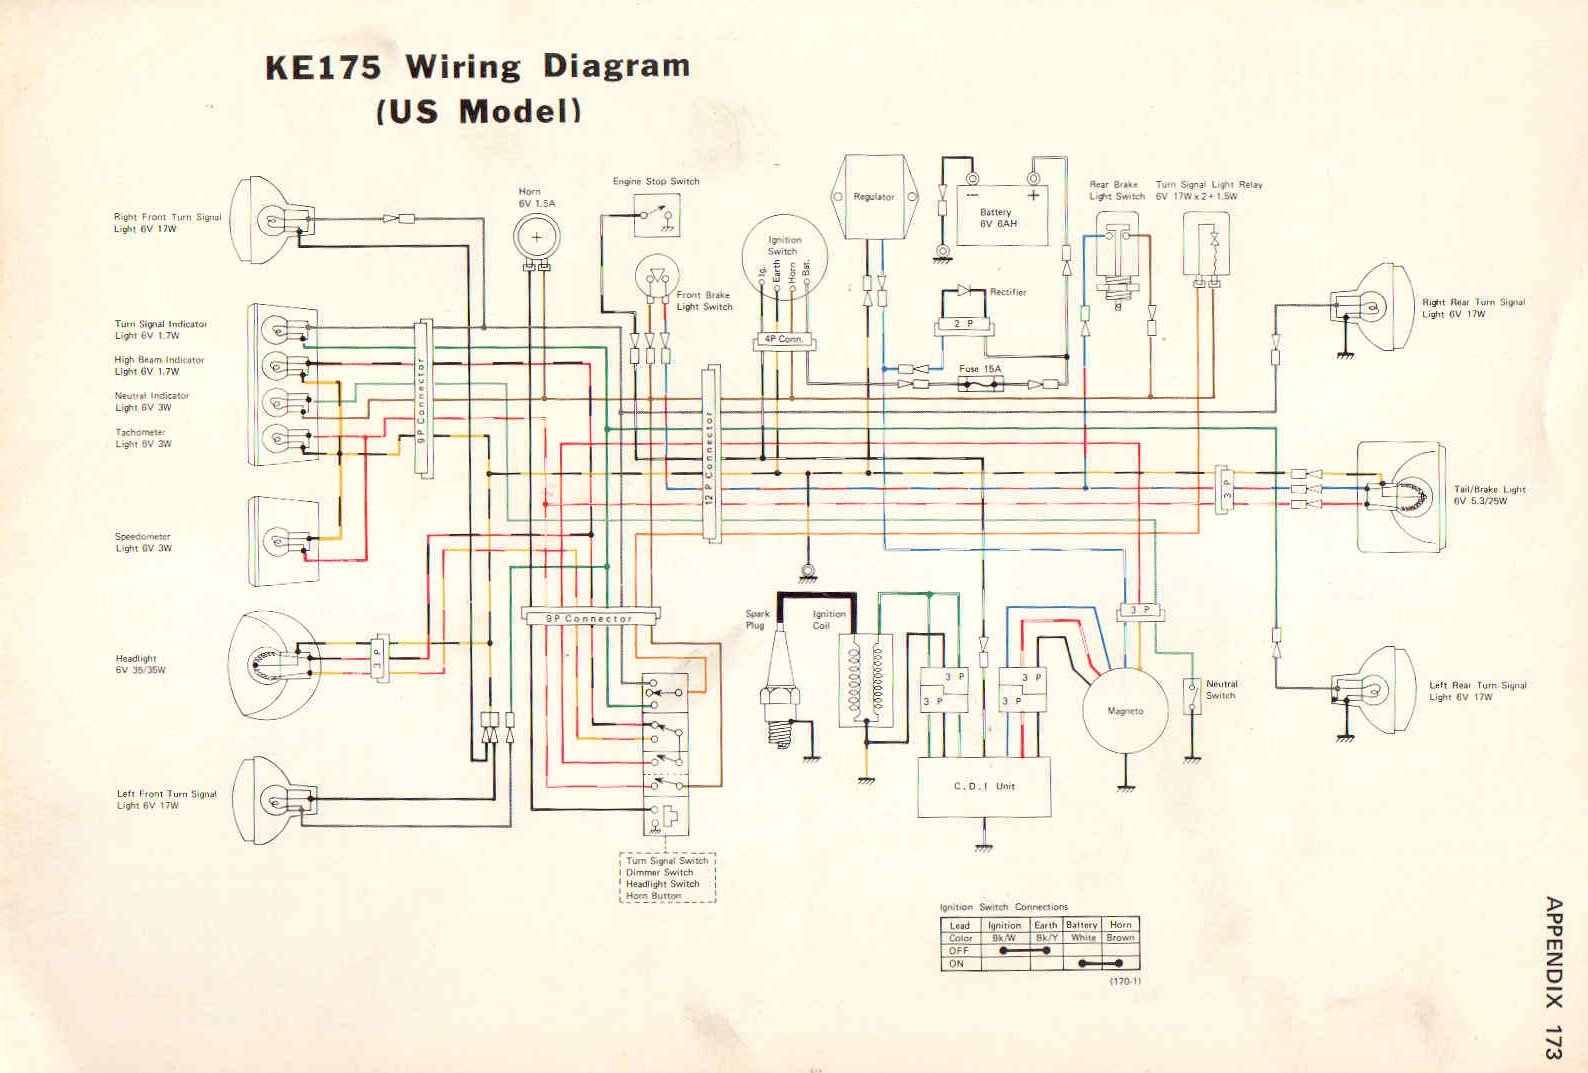 31 kawasaki wiring diagram 22 hp kawasaki wiring diagram kawasaki ke175 service manual & wiring diagram #15